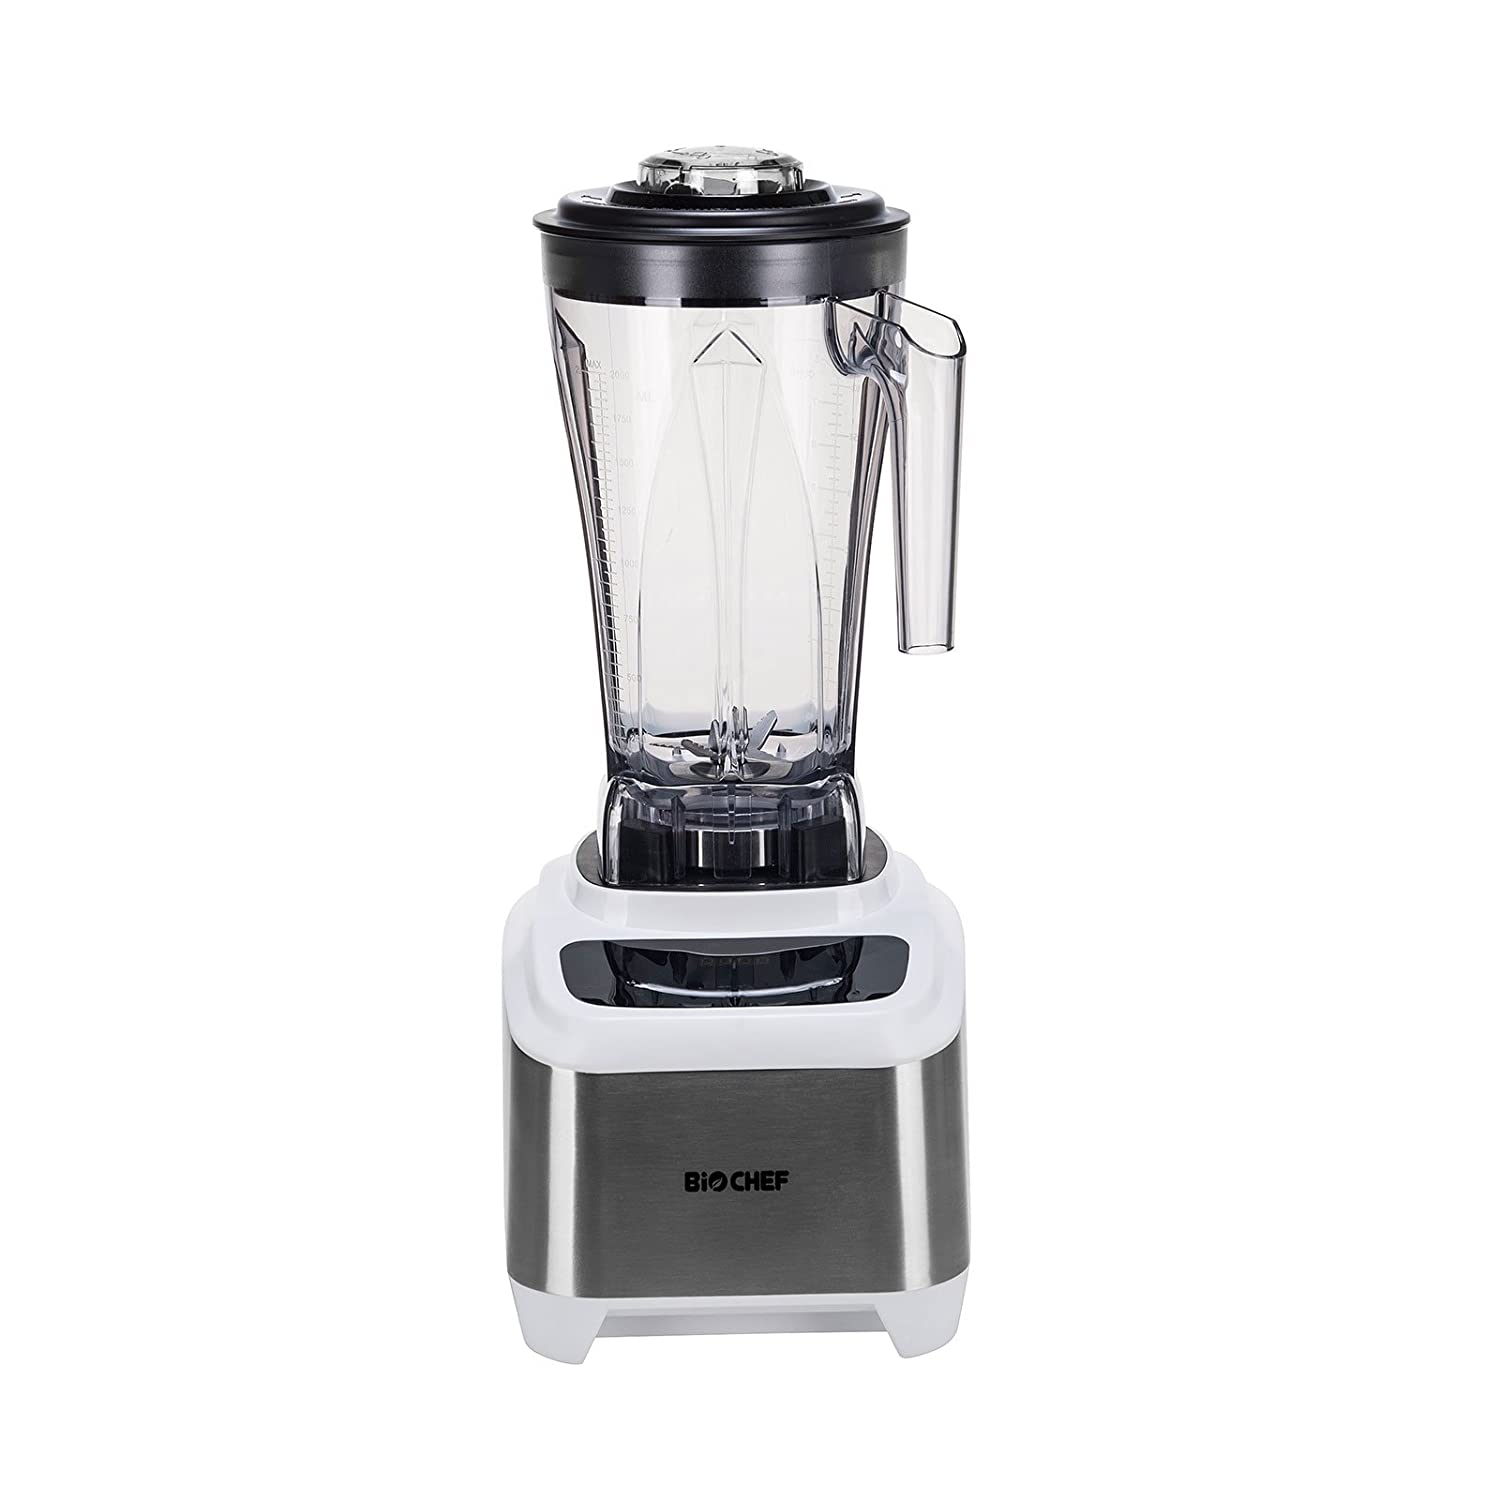 biochef power atlas blender